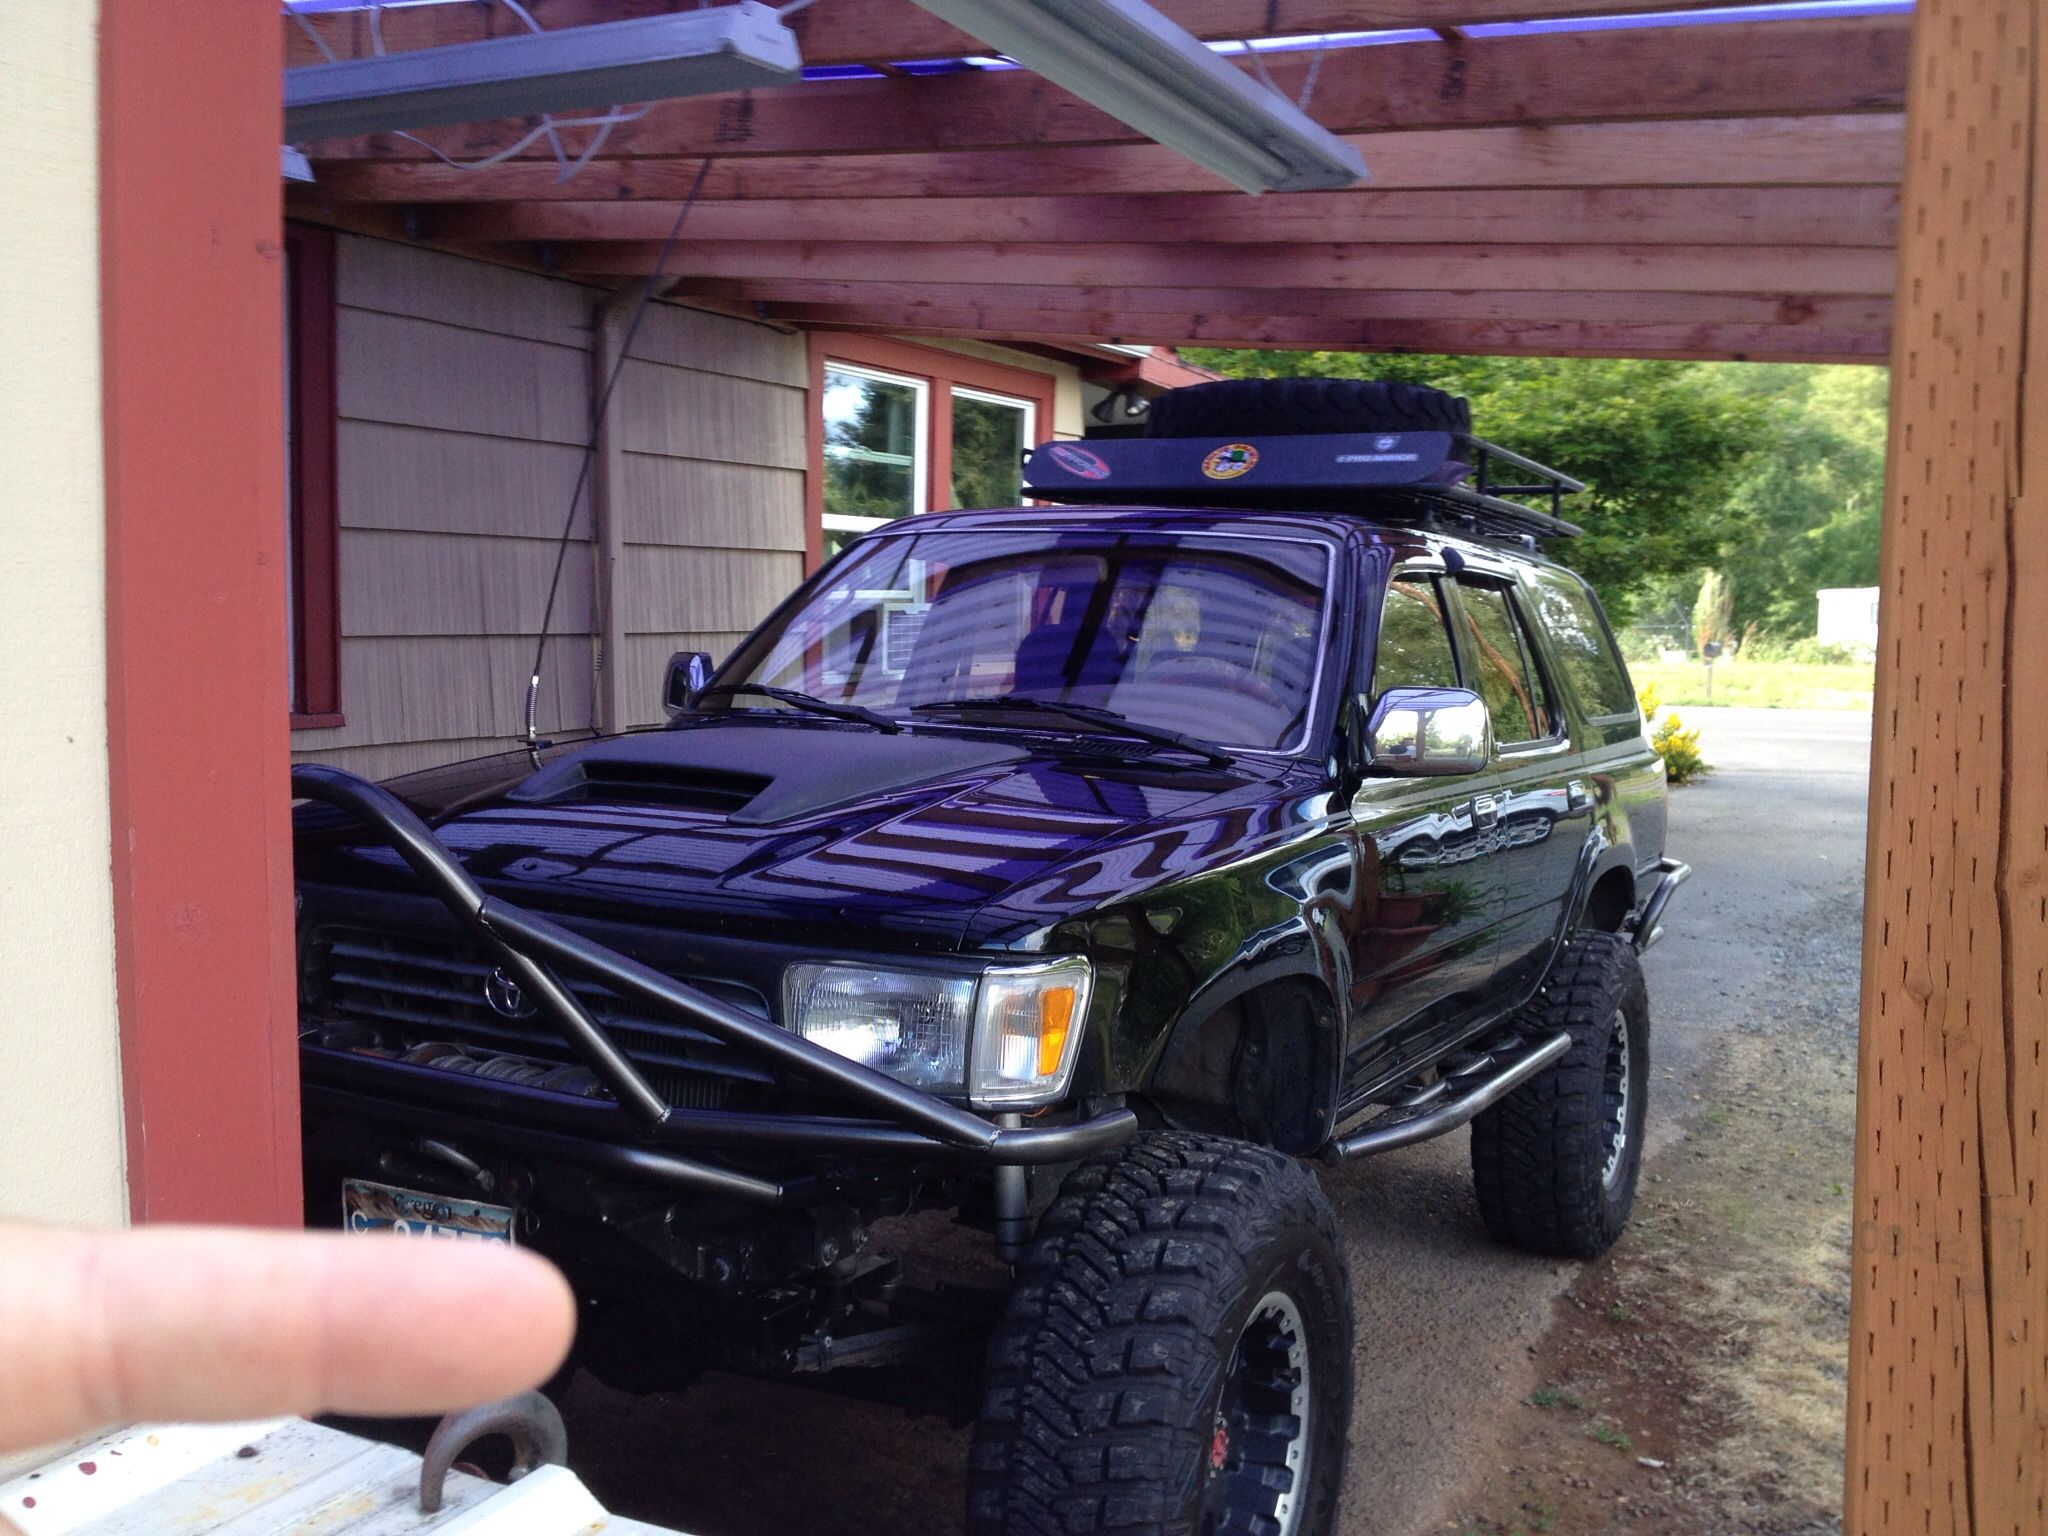 This is one that i put a ton of time into 1995 toyota 4runner swapped a 2004 tundra 4 7 ltr v 8 into the truck sas ed locked f r bumpers f r sliders